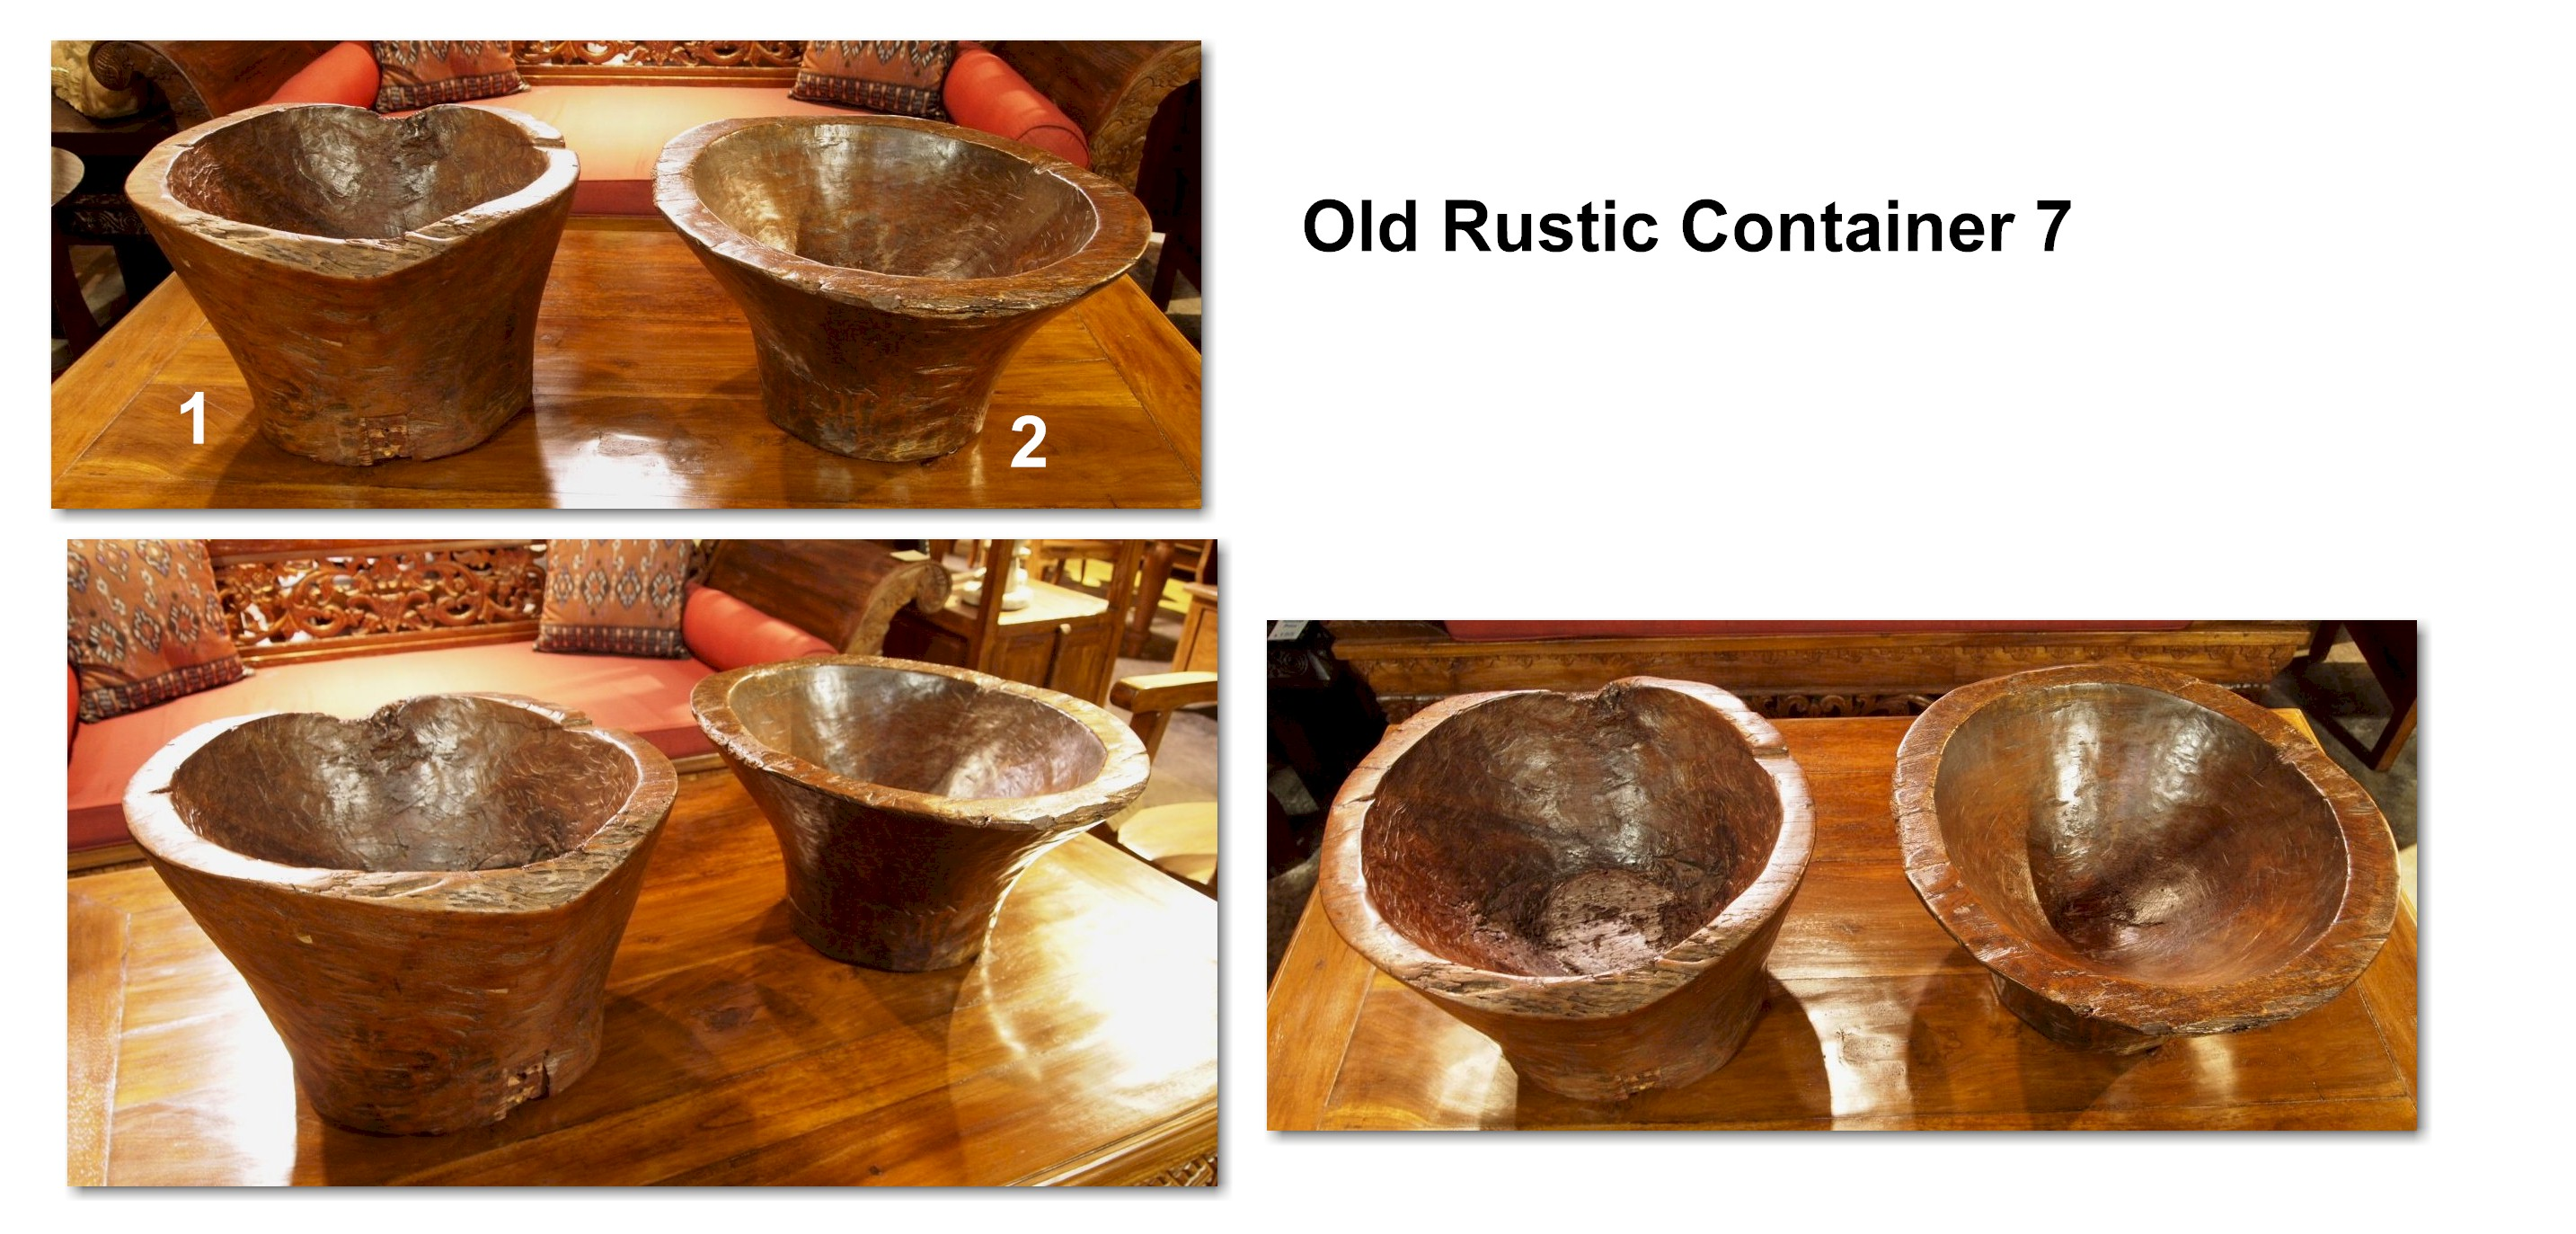 Old Rustic Container 7